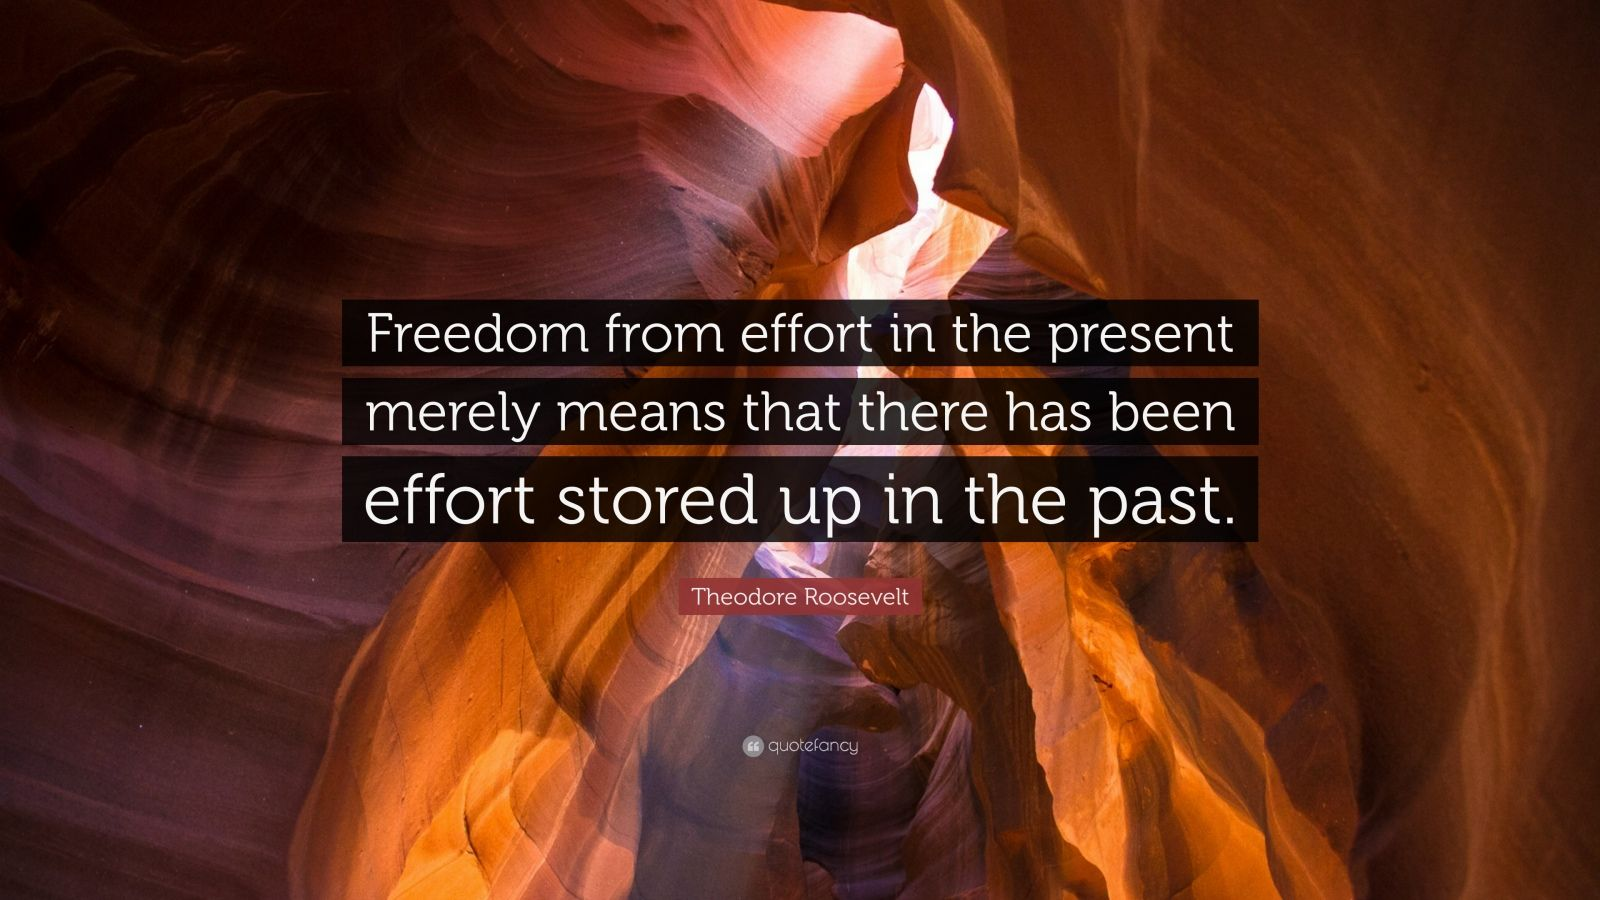 """Theodore Roosevelt Quote: """"Freedom from effort in the present merely means that there has been effort stored up in the past."""""""